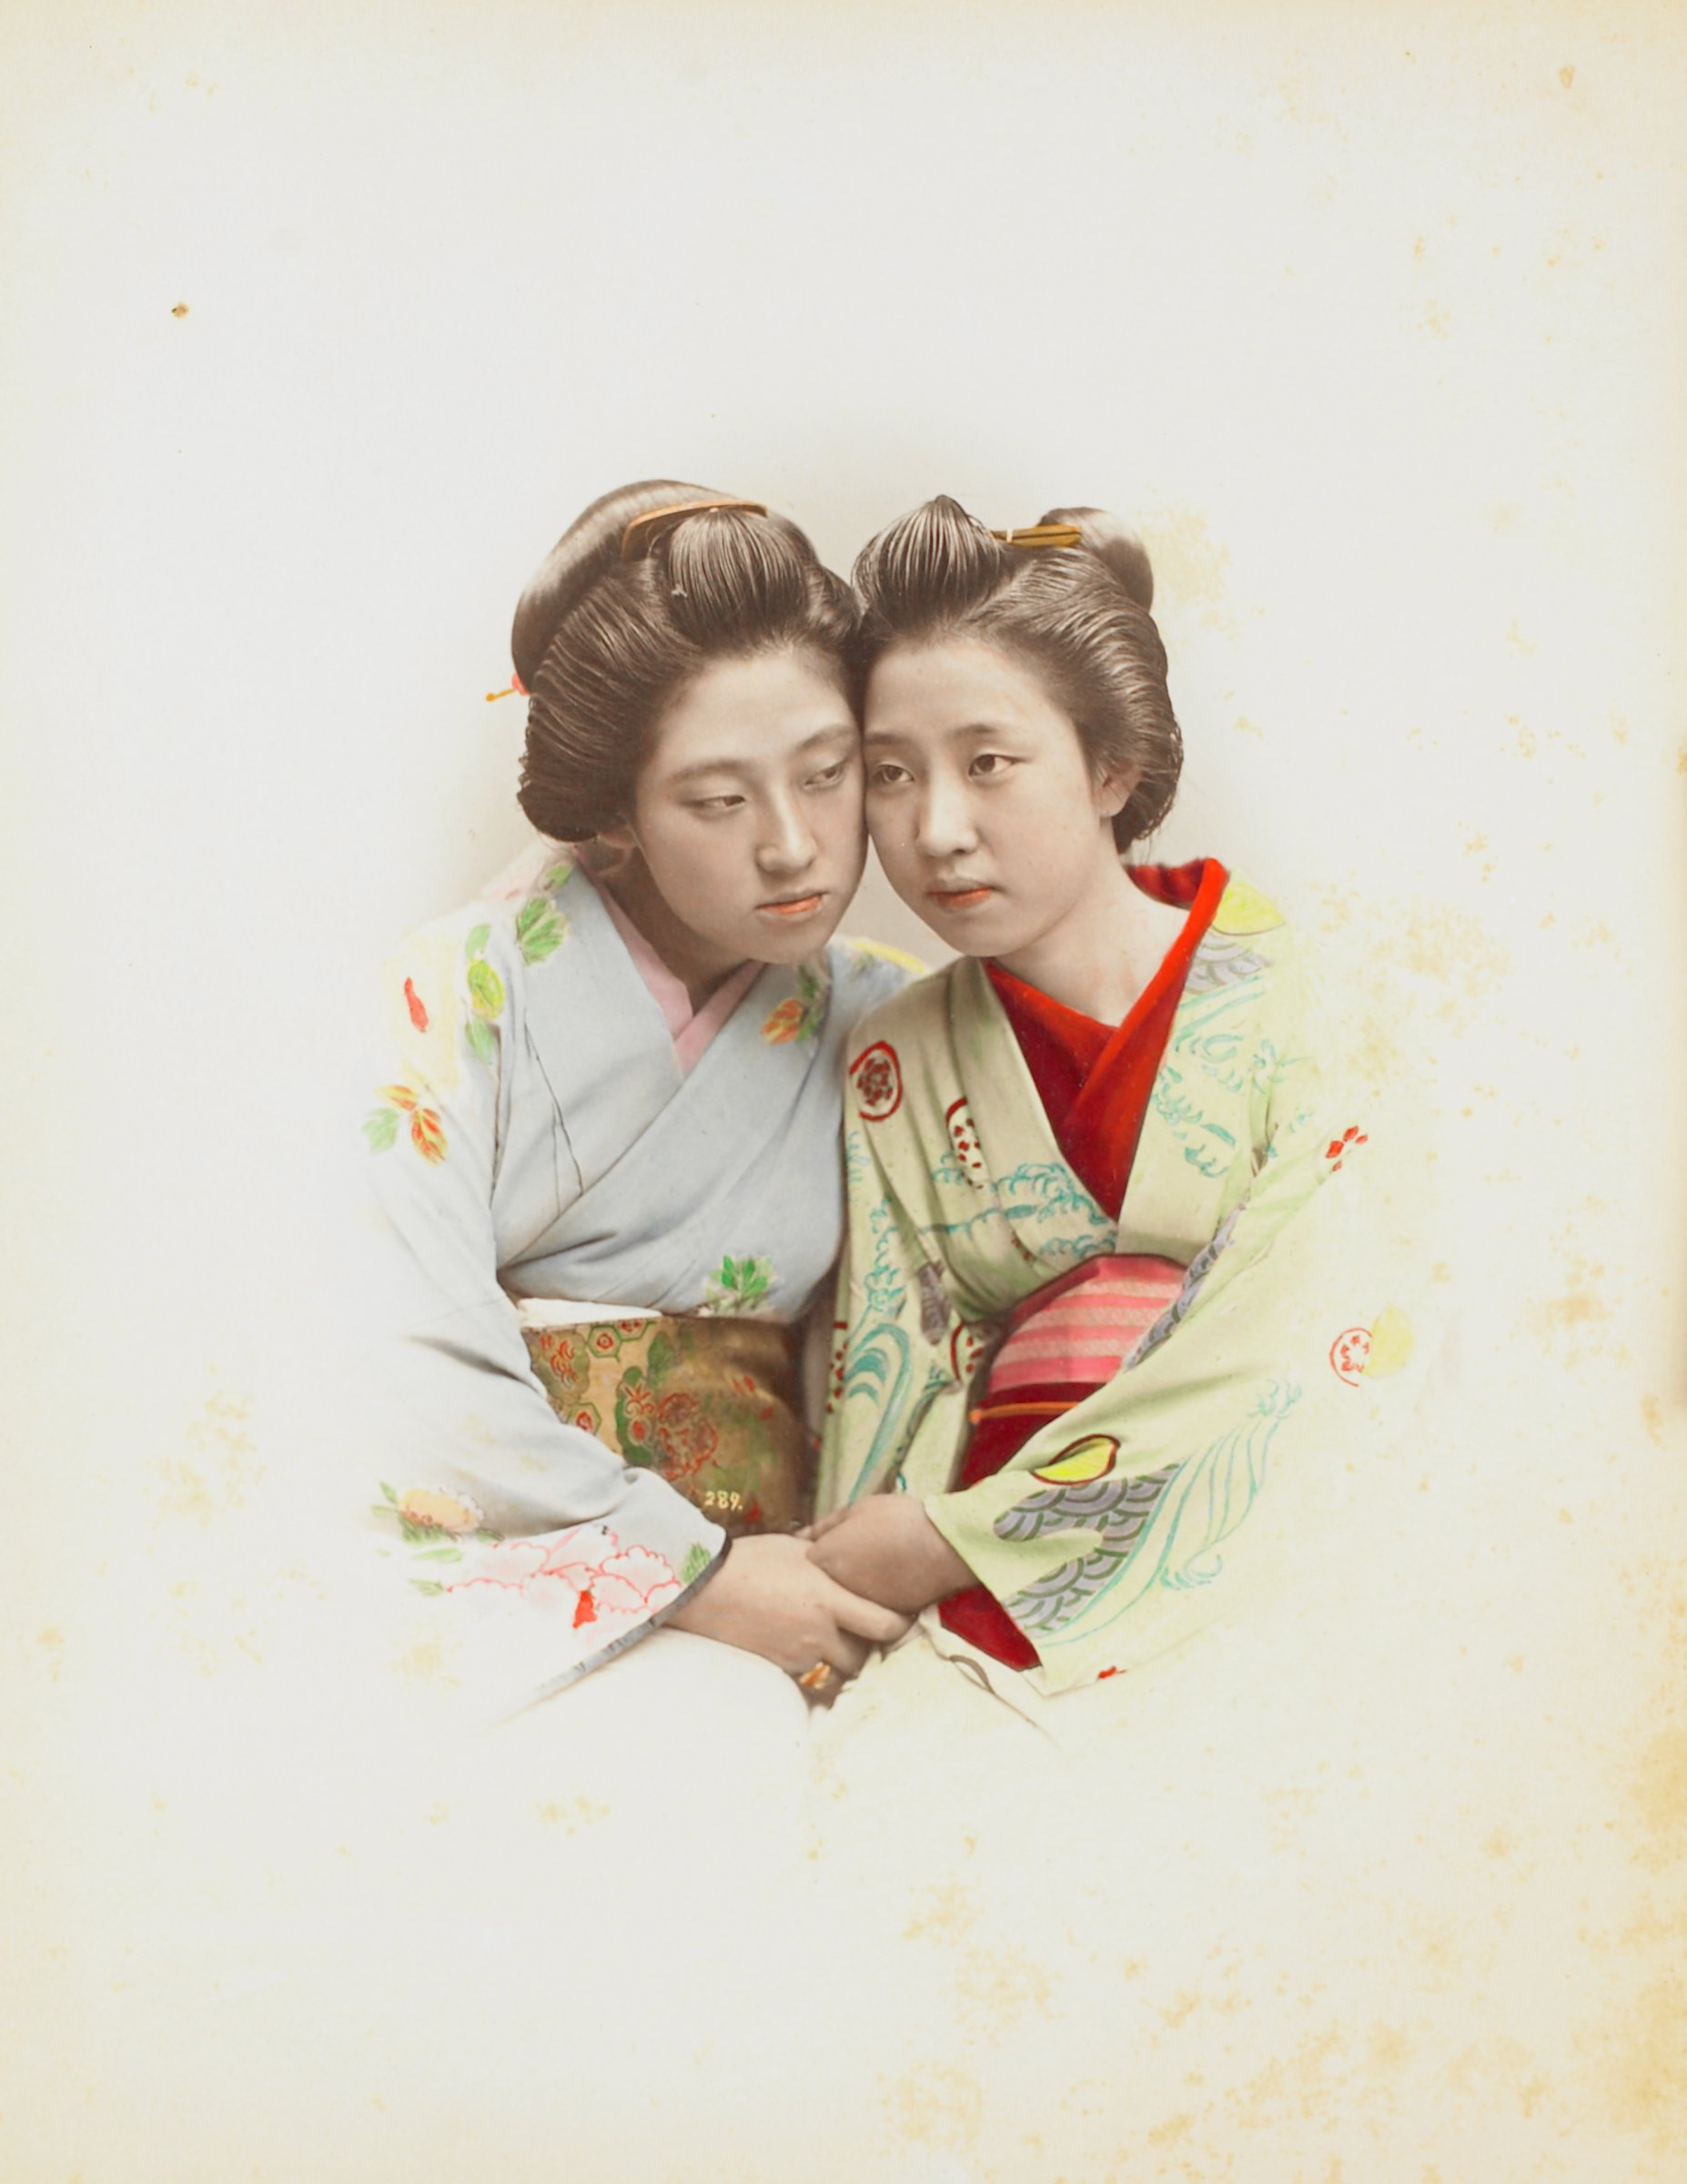 Hair Dressing (.2, recto); Portrait of Friends (.3, verso), Attributed to Kusakabe Kimbei, hand-colored albumen prints mounted to album page